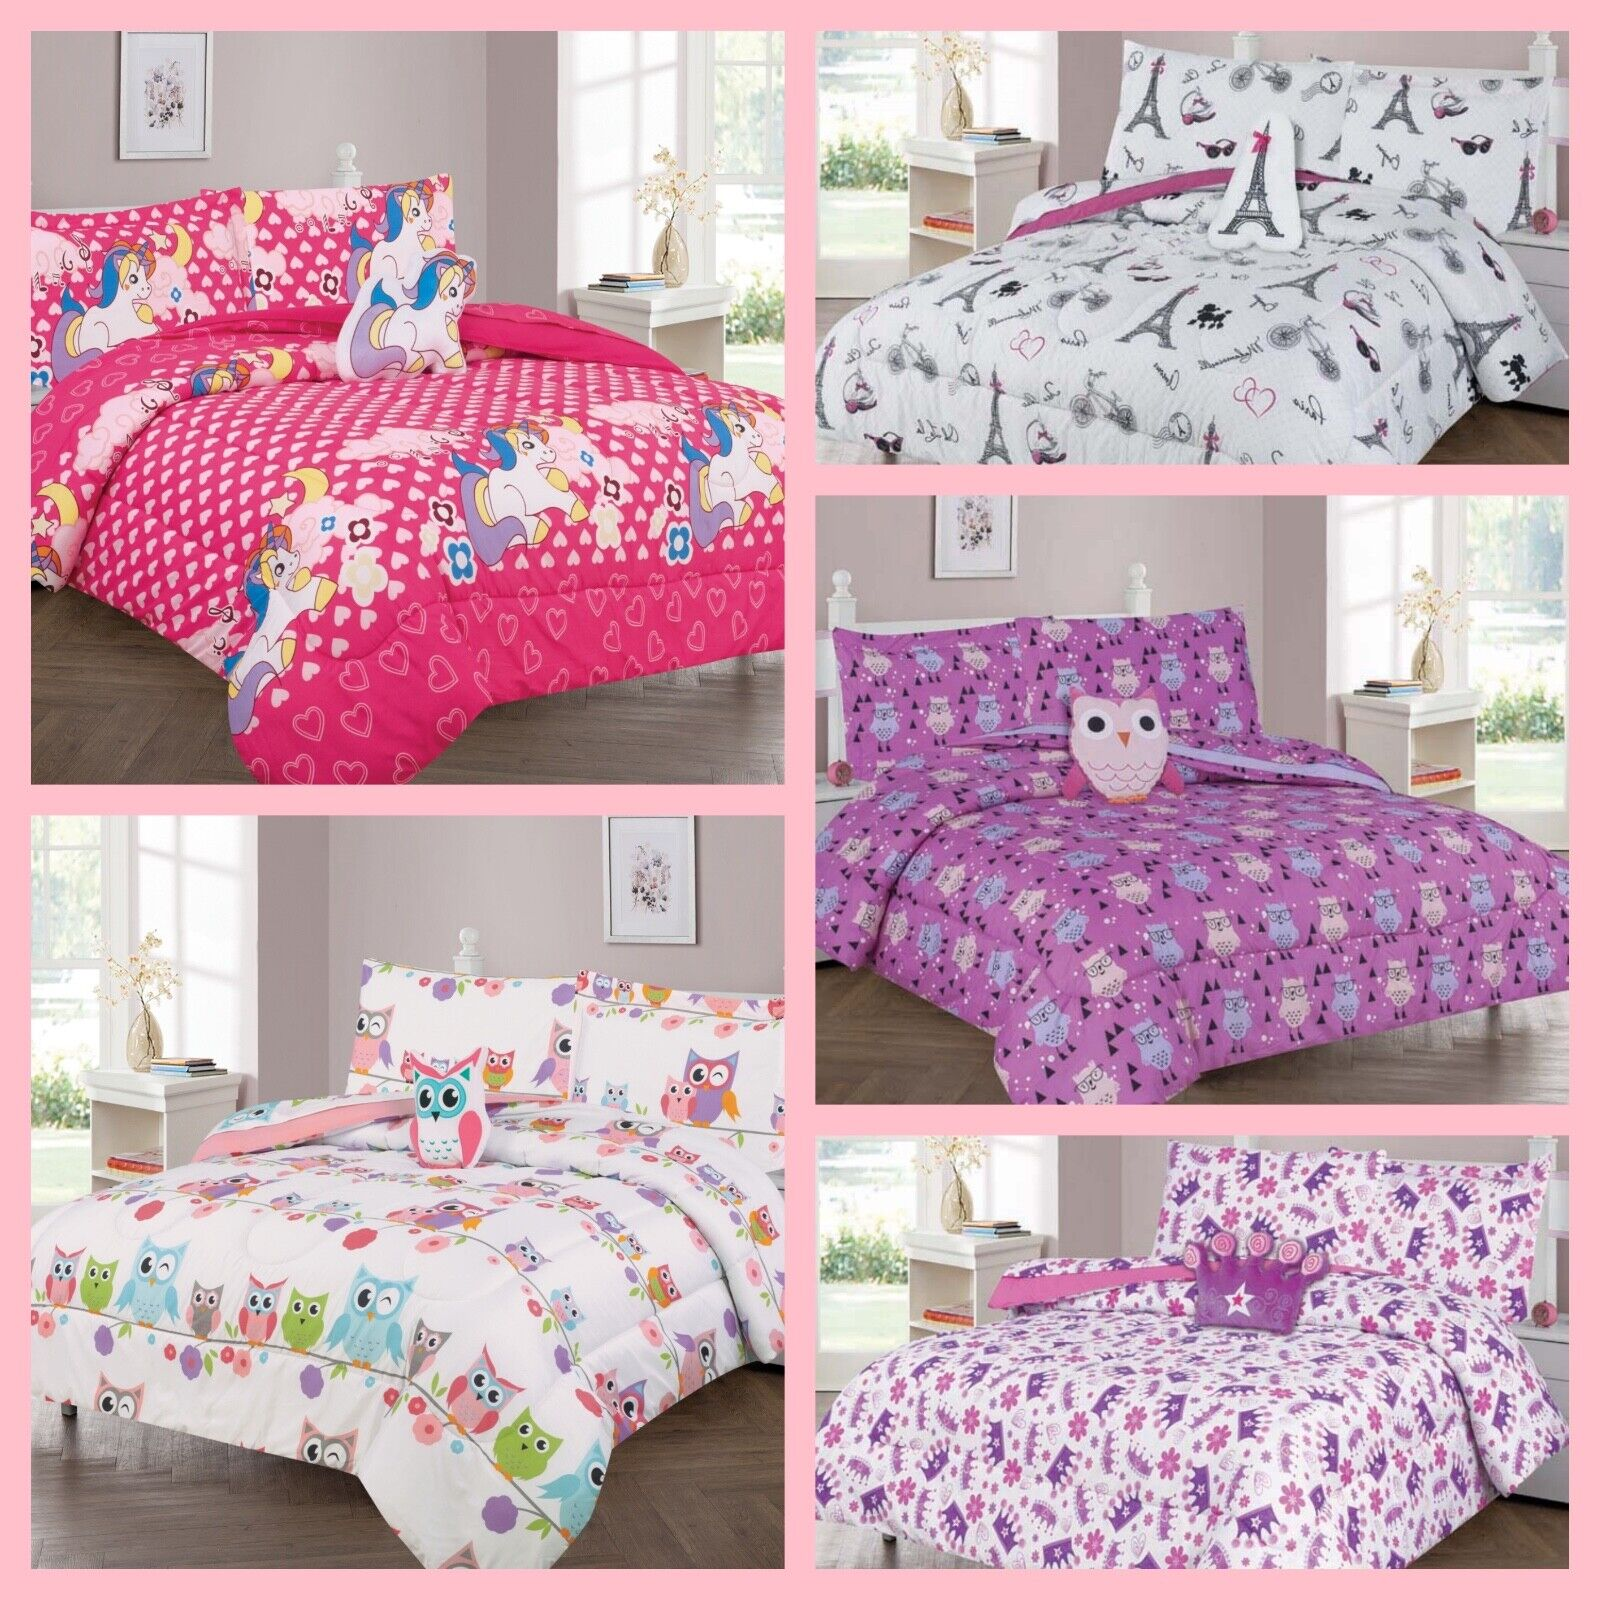 Kids Bedding Sets Girls Bedroom Decor Purple Twin Bed Comforter Set Butterfly For Sale Online Ebay